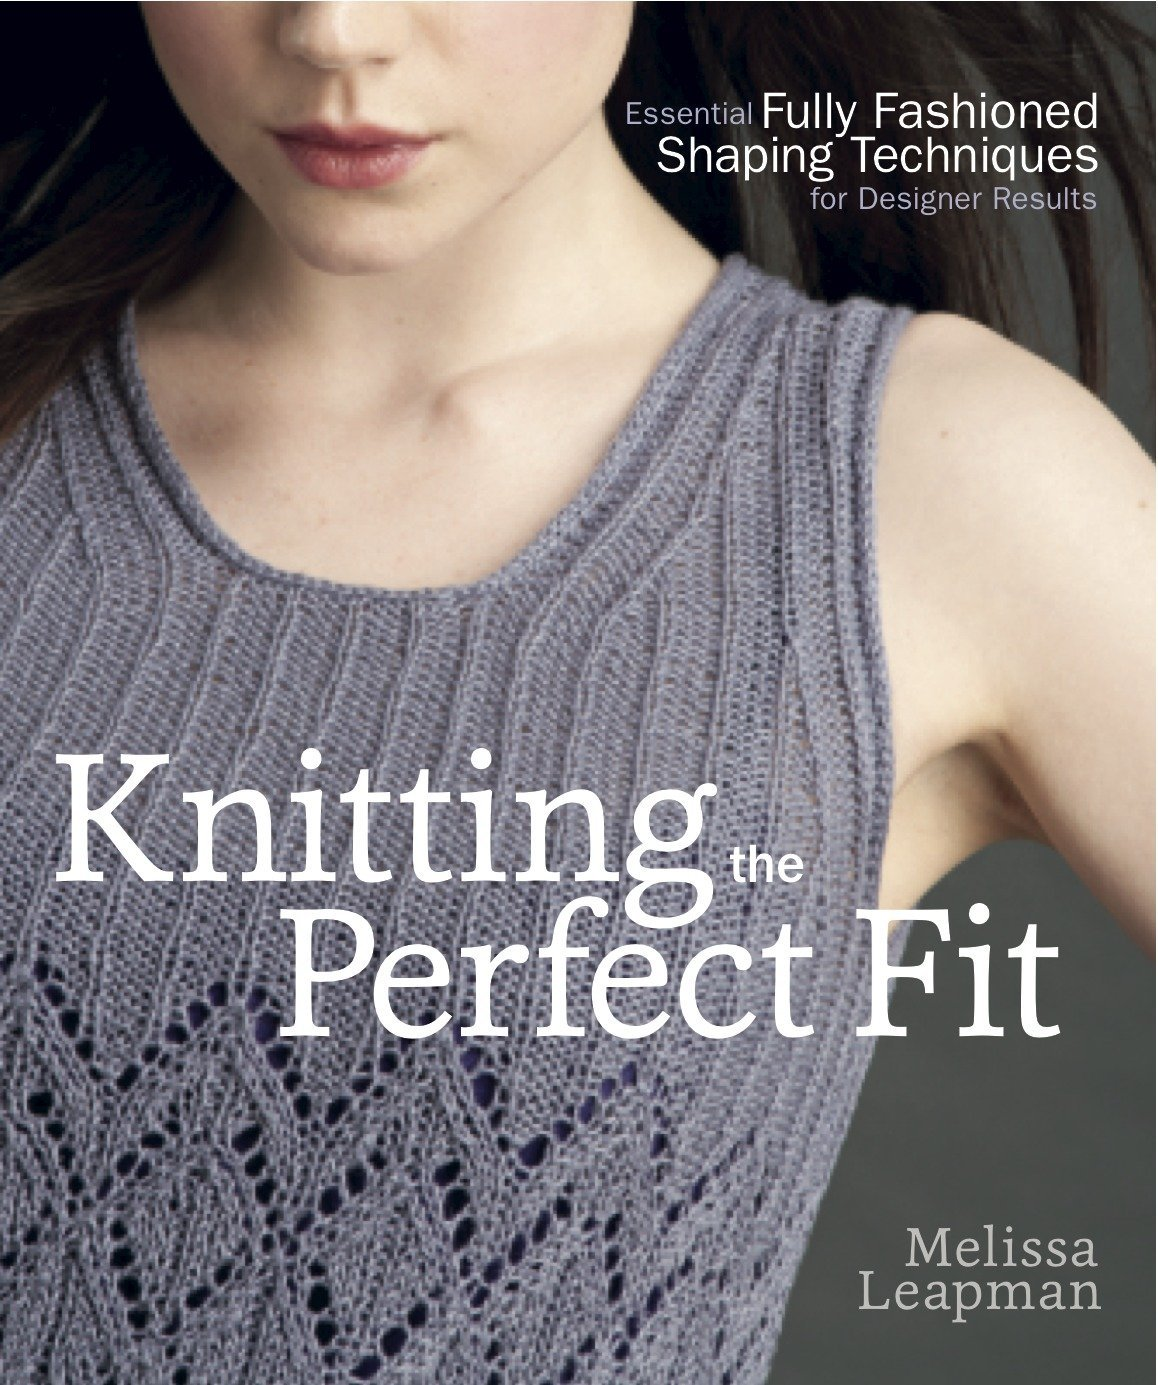 Knitting the Perfect Fit: Essential Fully Fashioned Shaping Techniques for Designer Results PDF